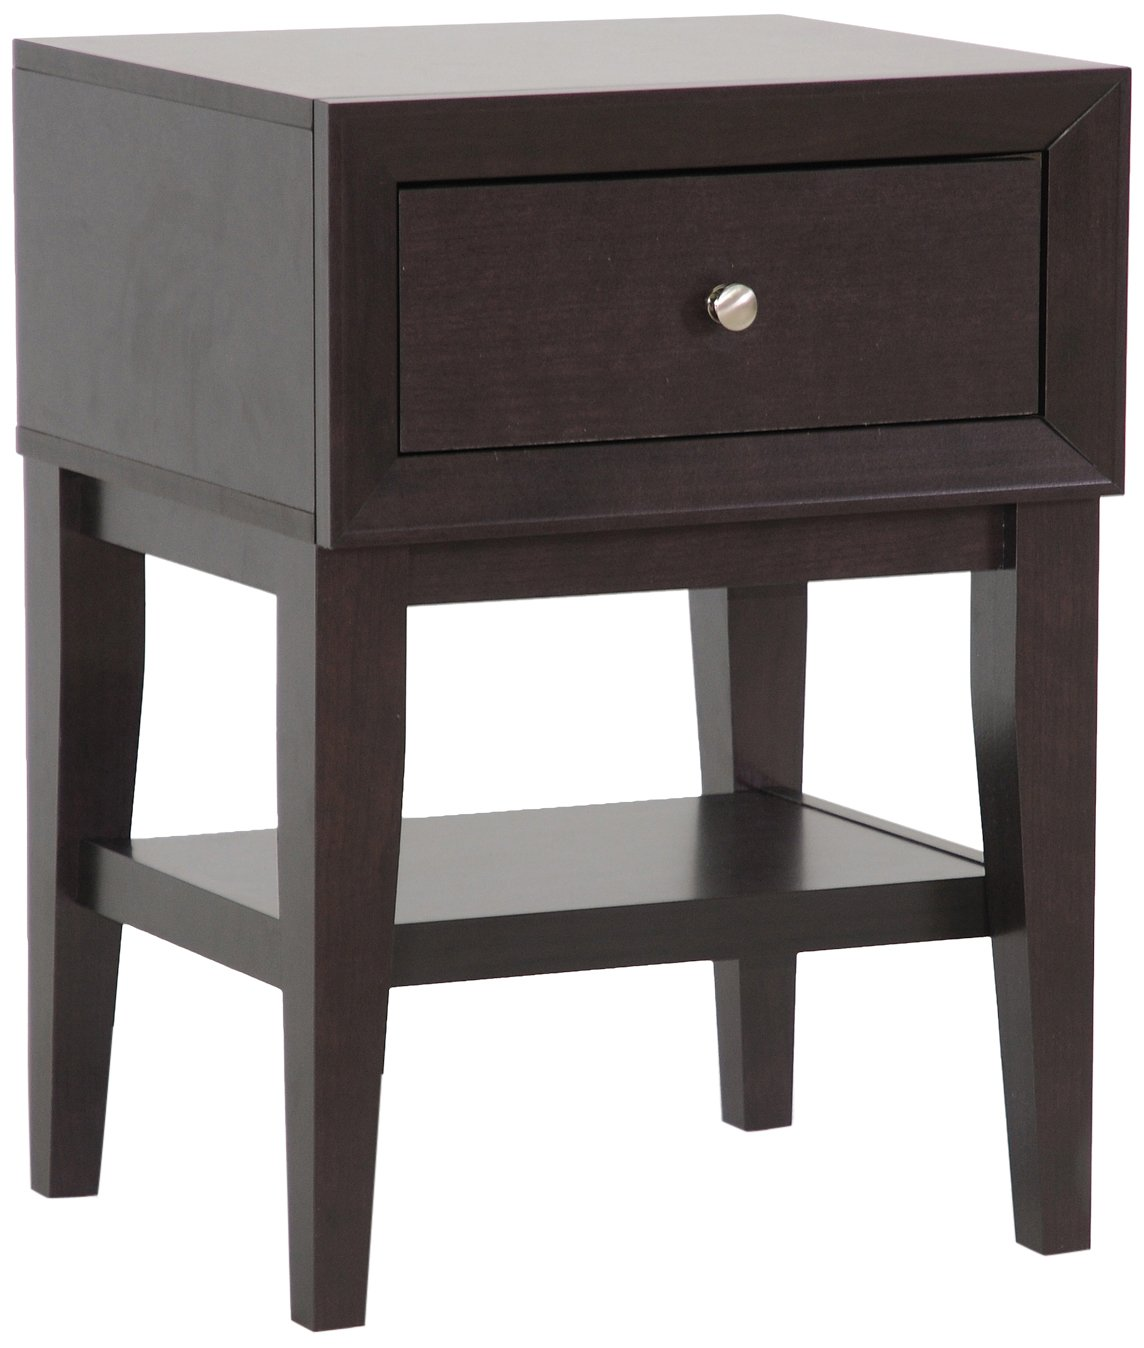 modern accent tables. Amazon.com: Baxton Studio Gaston Modern Accent Table And Nightstand, Brown: Kitchen \u0026 Dining Tables